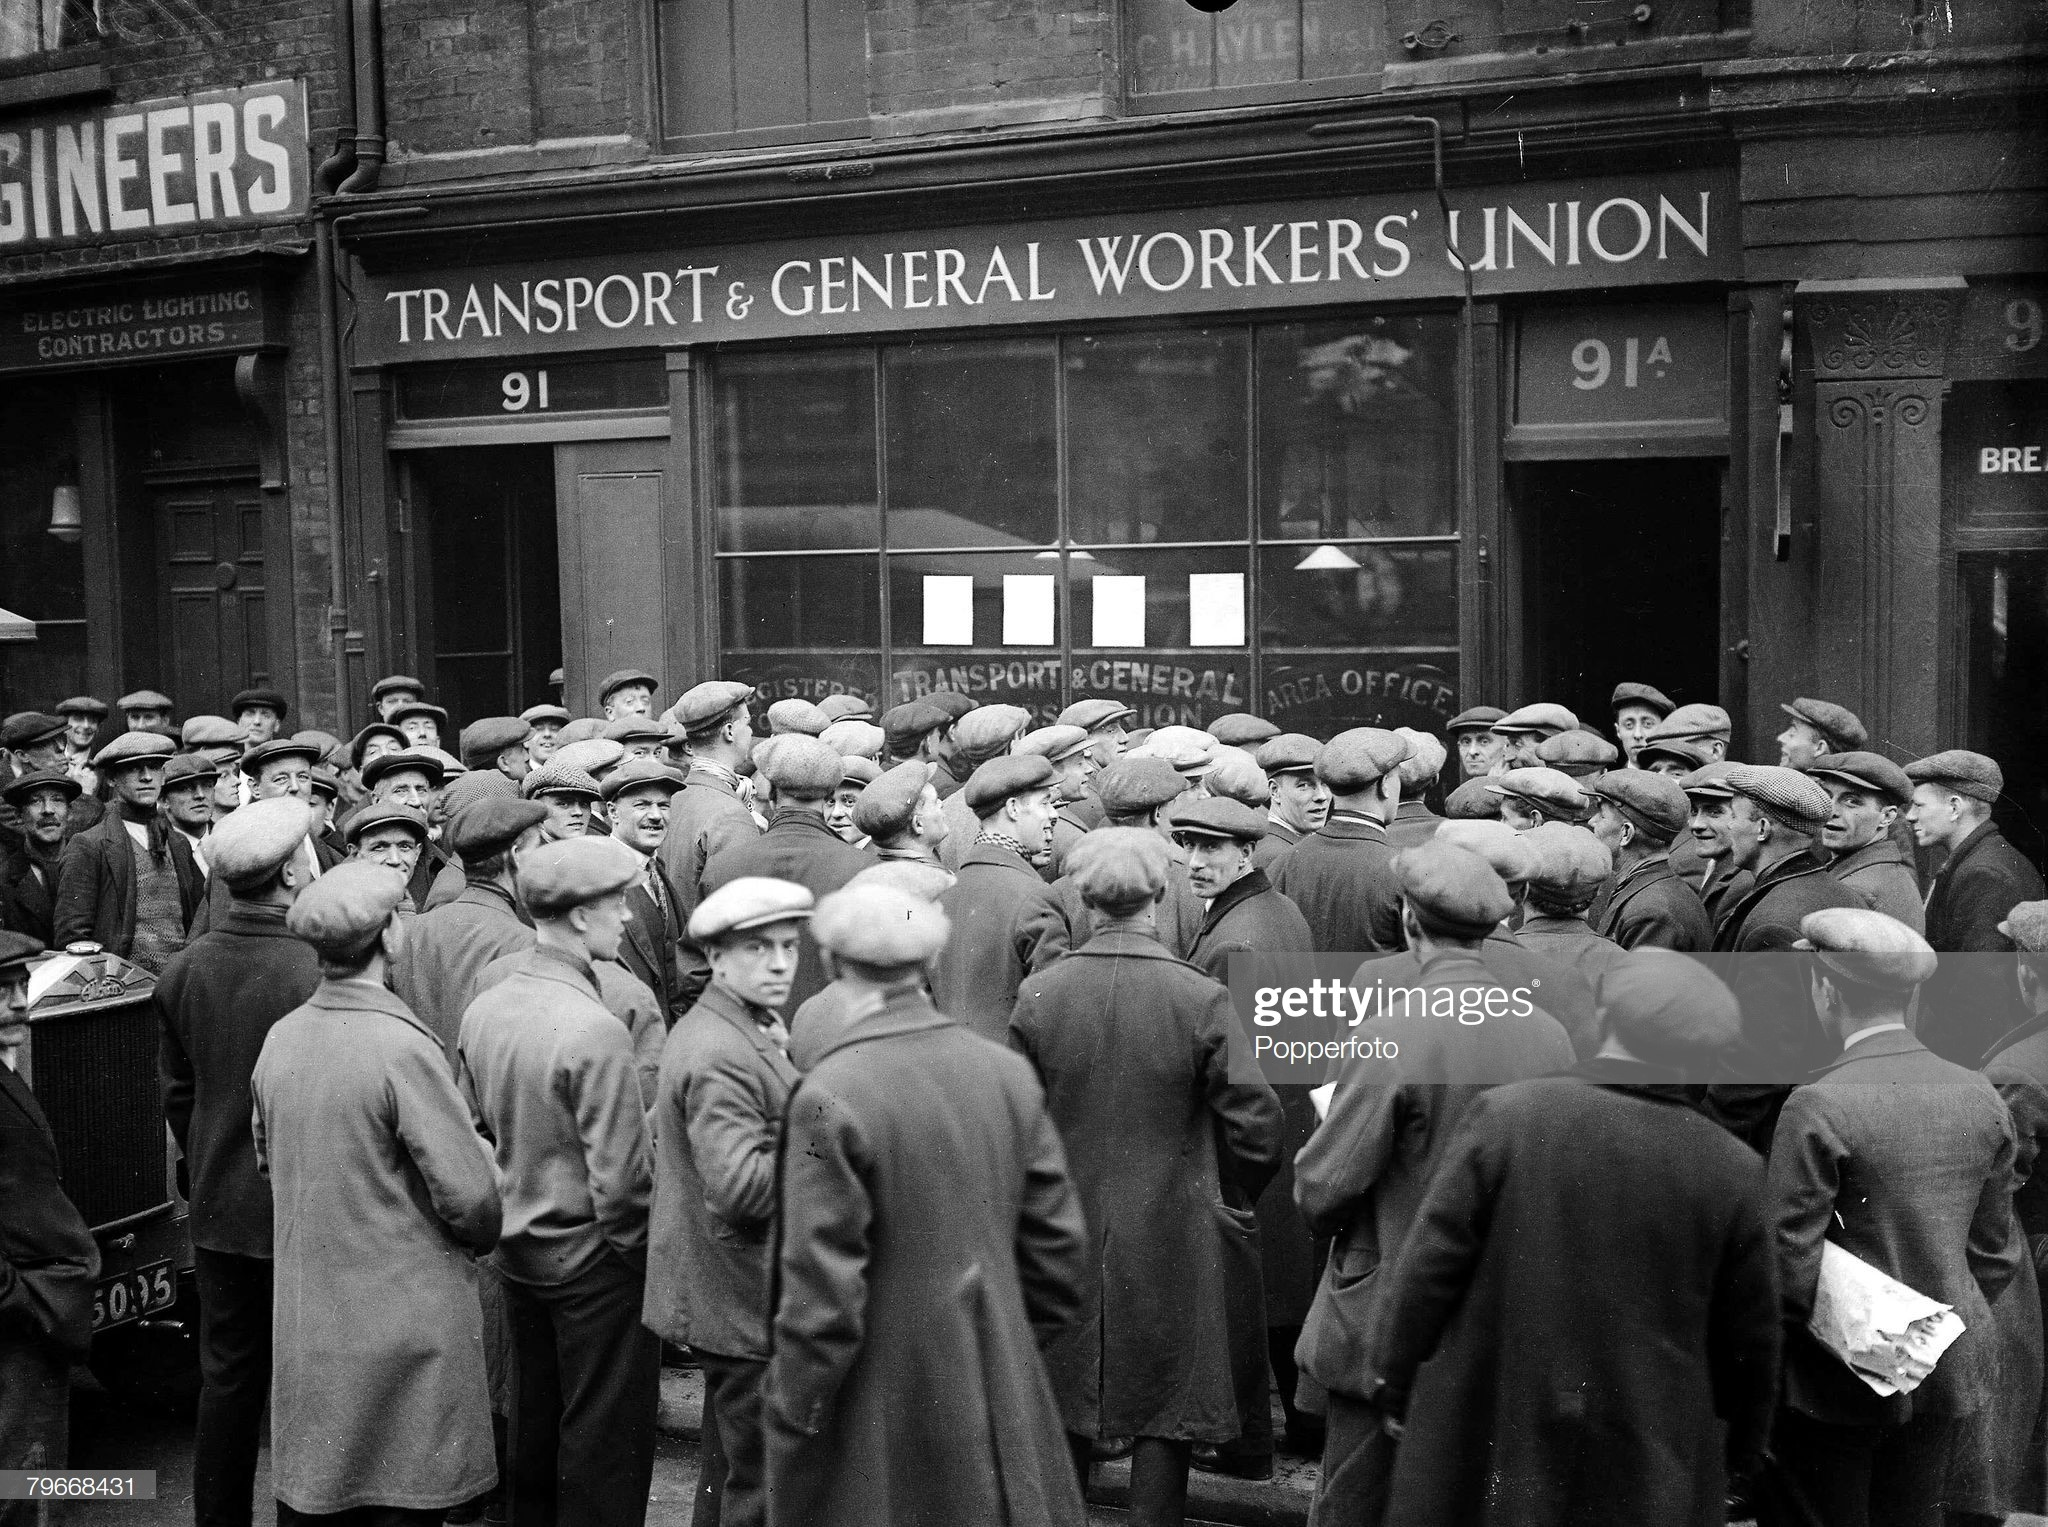 Tooley Street 1930, Striking shipyard workers gather outside the Transport & General Workers Union office during the dock strike. x.jpg